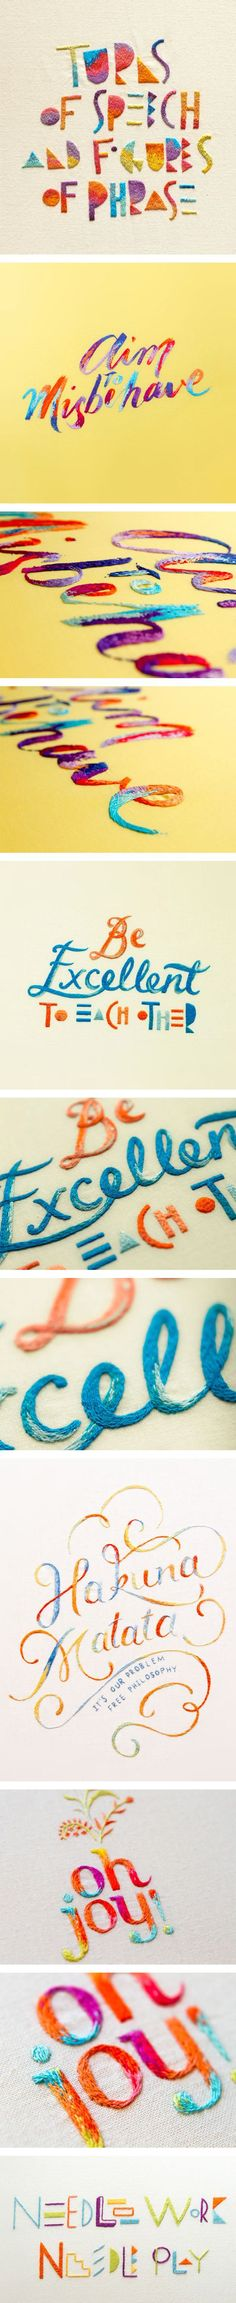 Pocket : Typographie et broderie : oh ouiii !